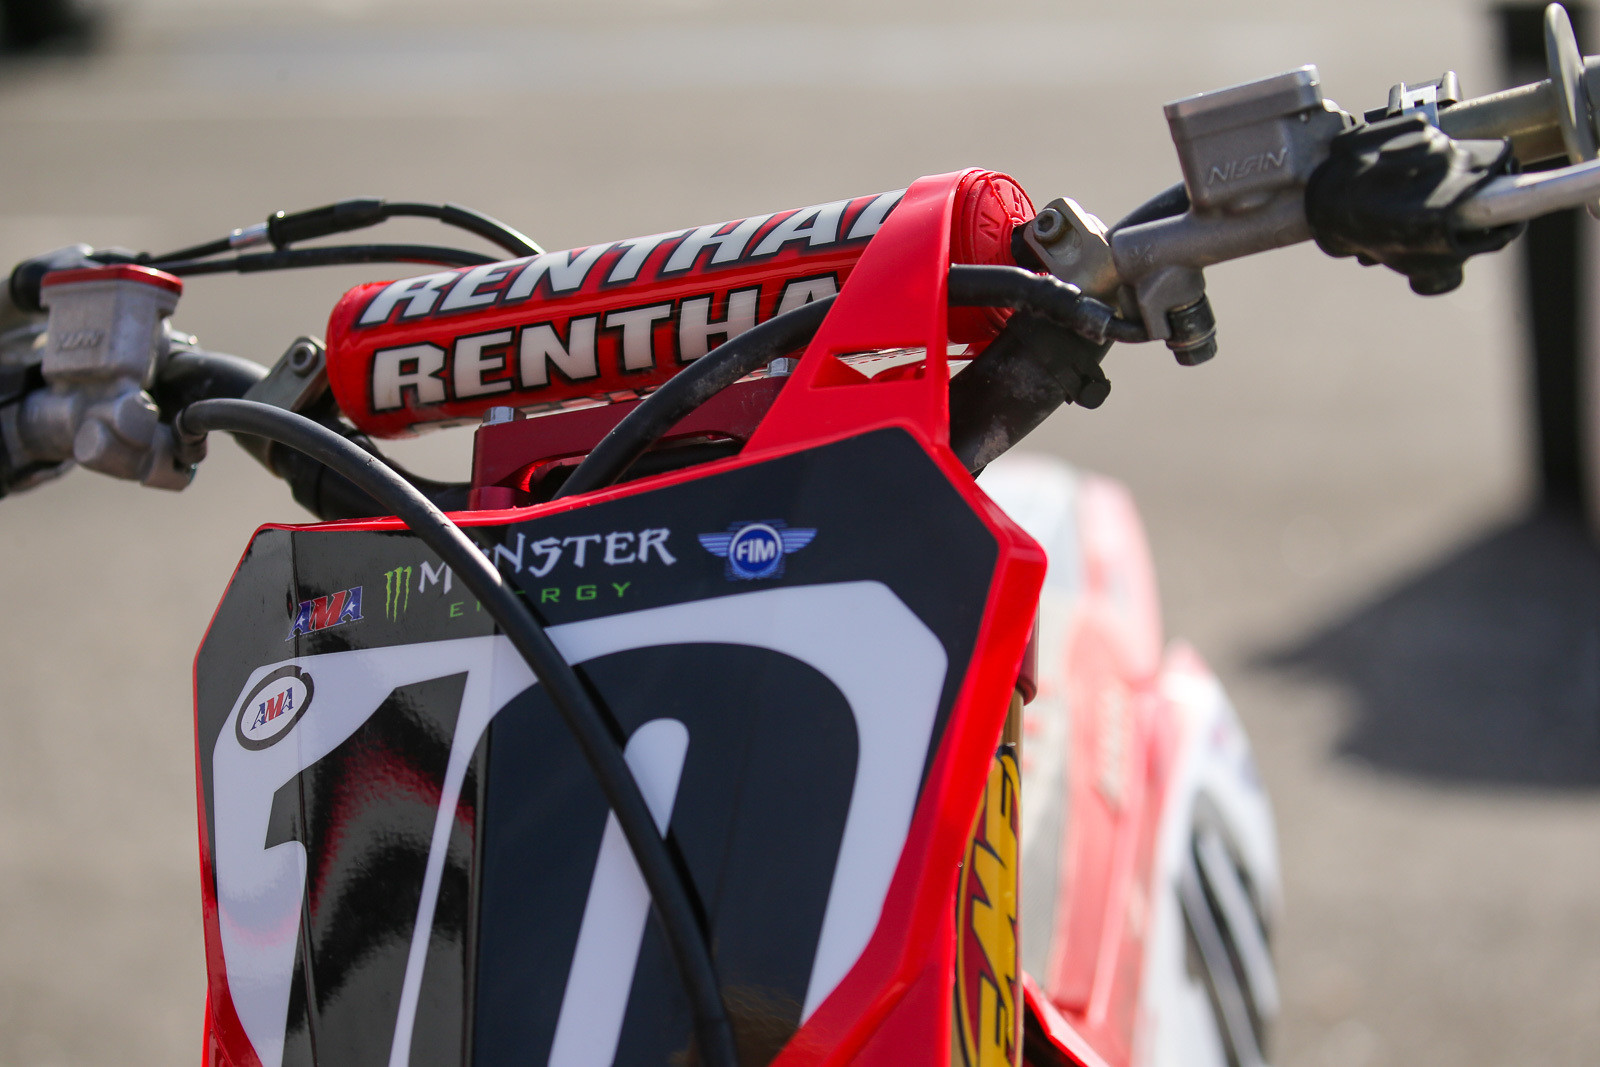 What else is different on JB's bike? To clean up the front of the bike for him, his mechanic, Brent, has routed the clutch line in front of the bars, rather than behind.